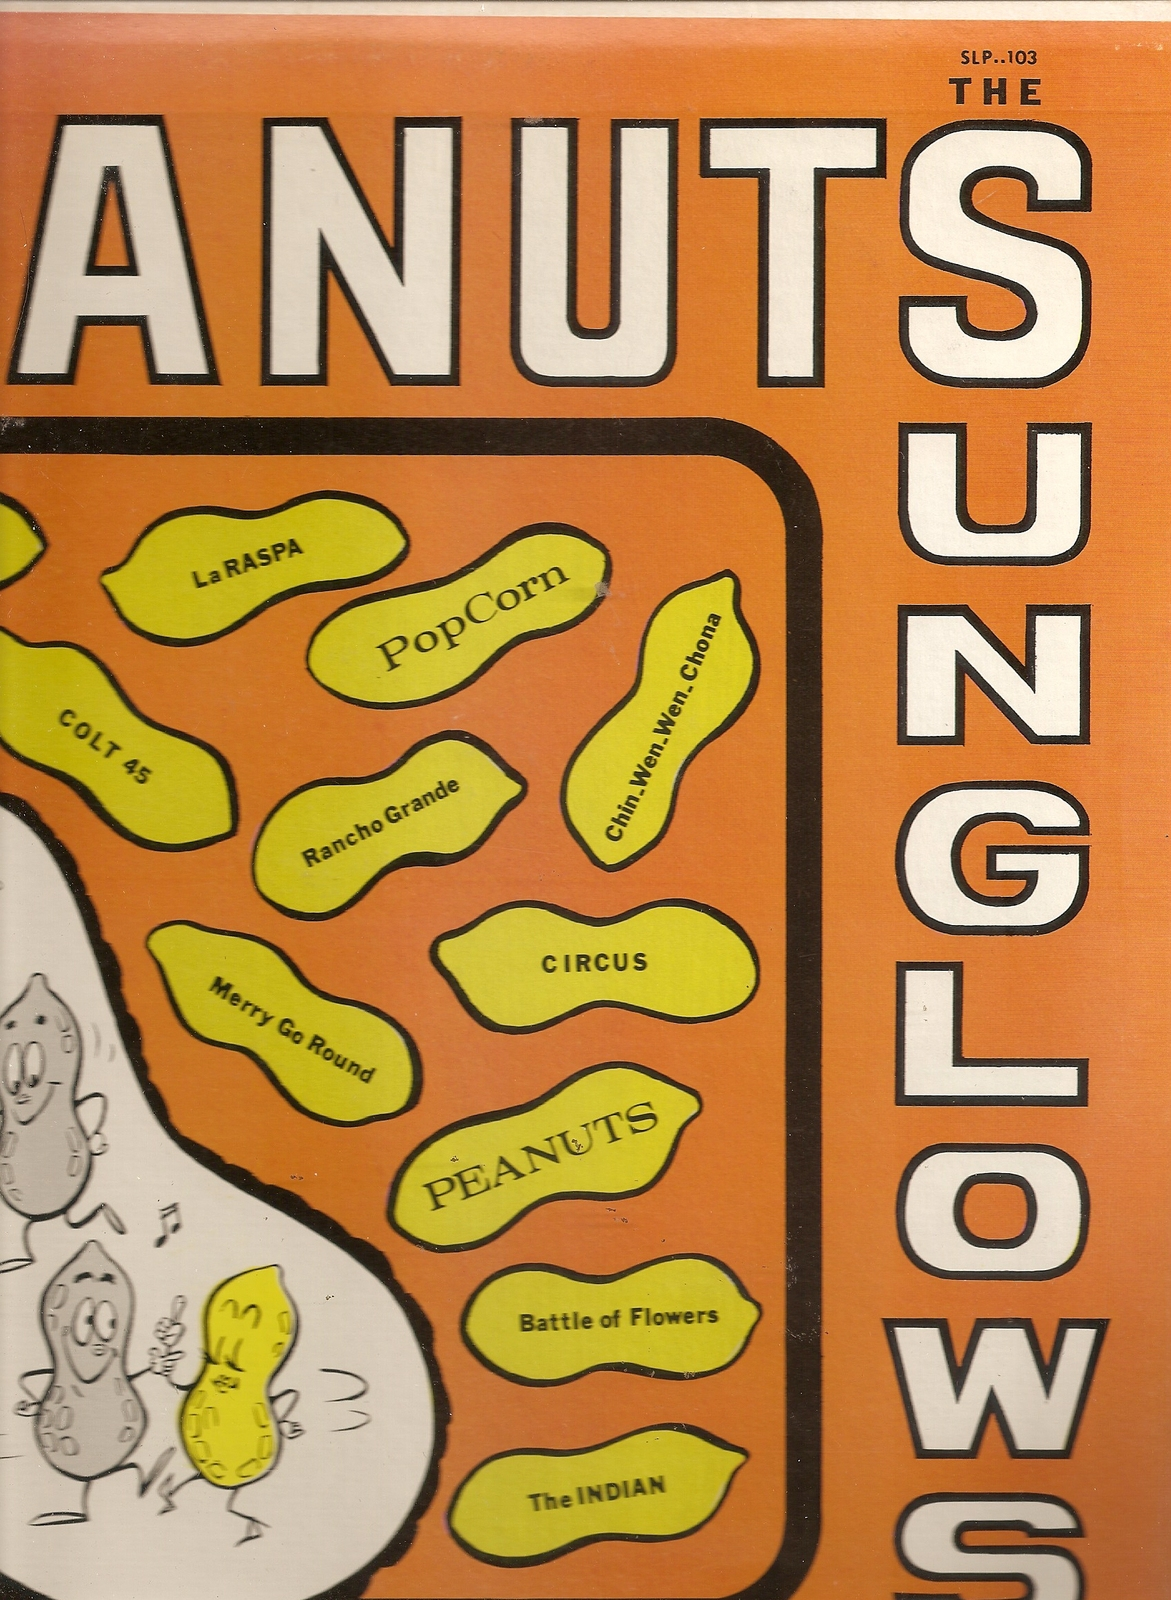 Primary image for lp--Sunglows 	 - 	 The Original Peanuts